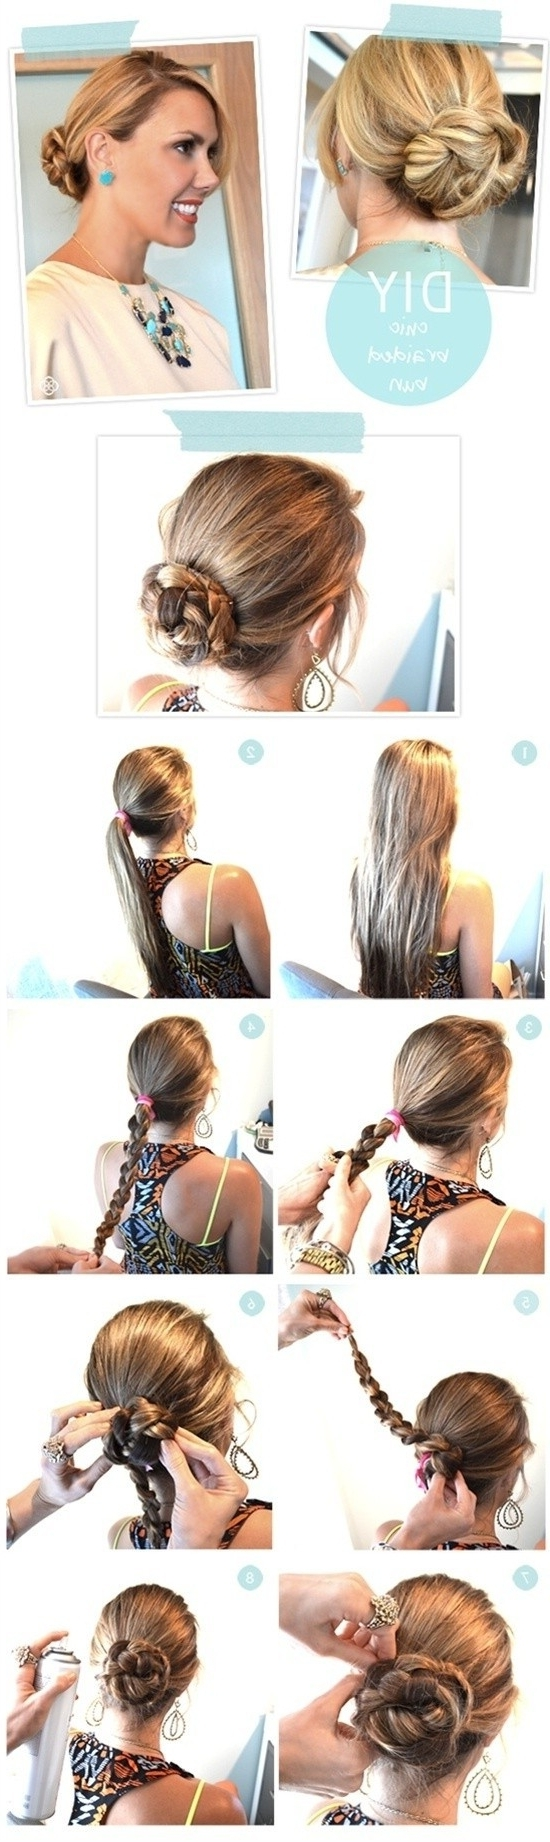 Stepstep Hairstyles For Long Hair: Long Hairstyles Ideas With Diy Updo  Hairstyles For Long Hair